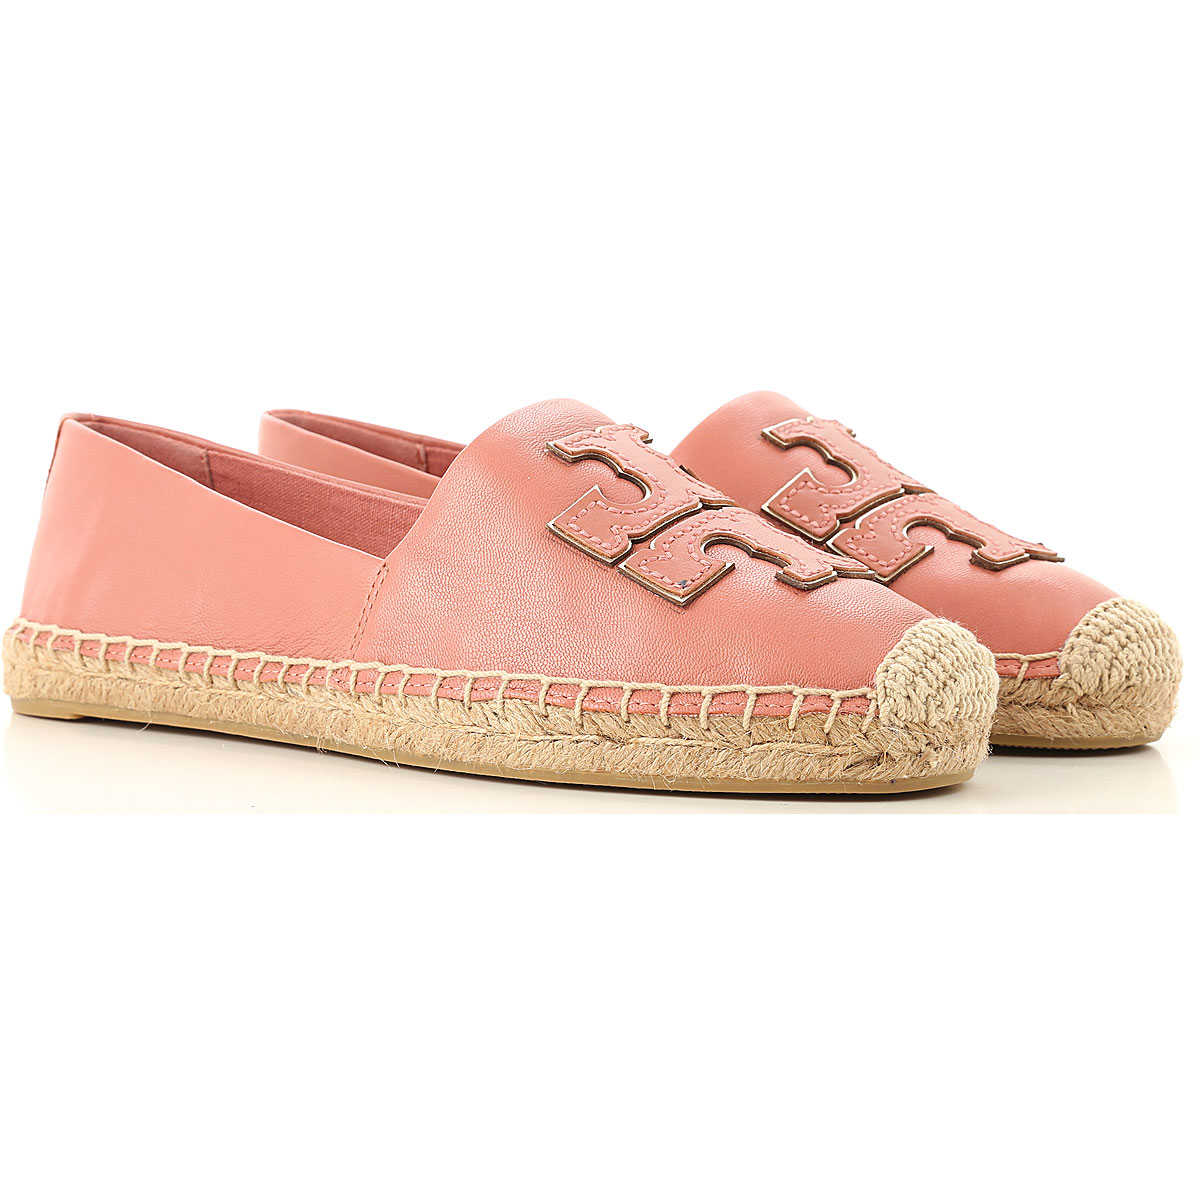 Tory Burch Loafers for Women